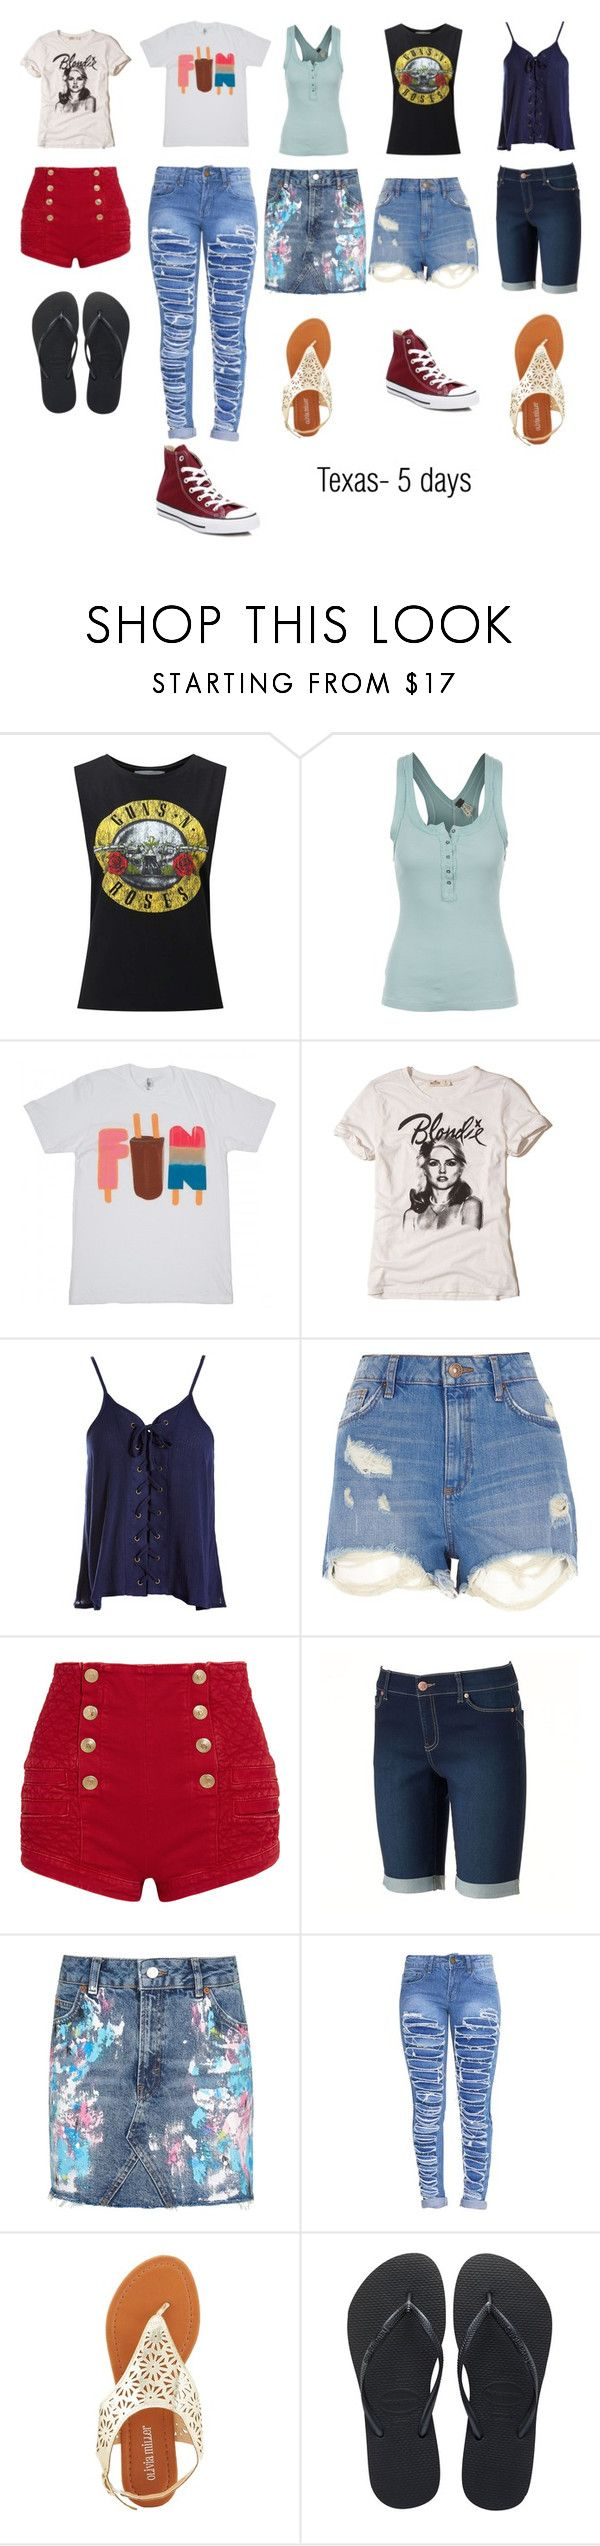 """""""Texas"""" by theweepingangelsgirl ❤ liked on Polyvore featuring Miss Selfridge, Free People, Hollister Co., Sans Souci, River Island, Pierre Balmain, Juicy Couture, Topshop, Olivia Miller and Havaianas"""